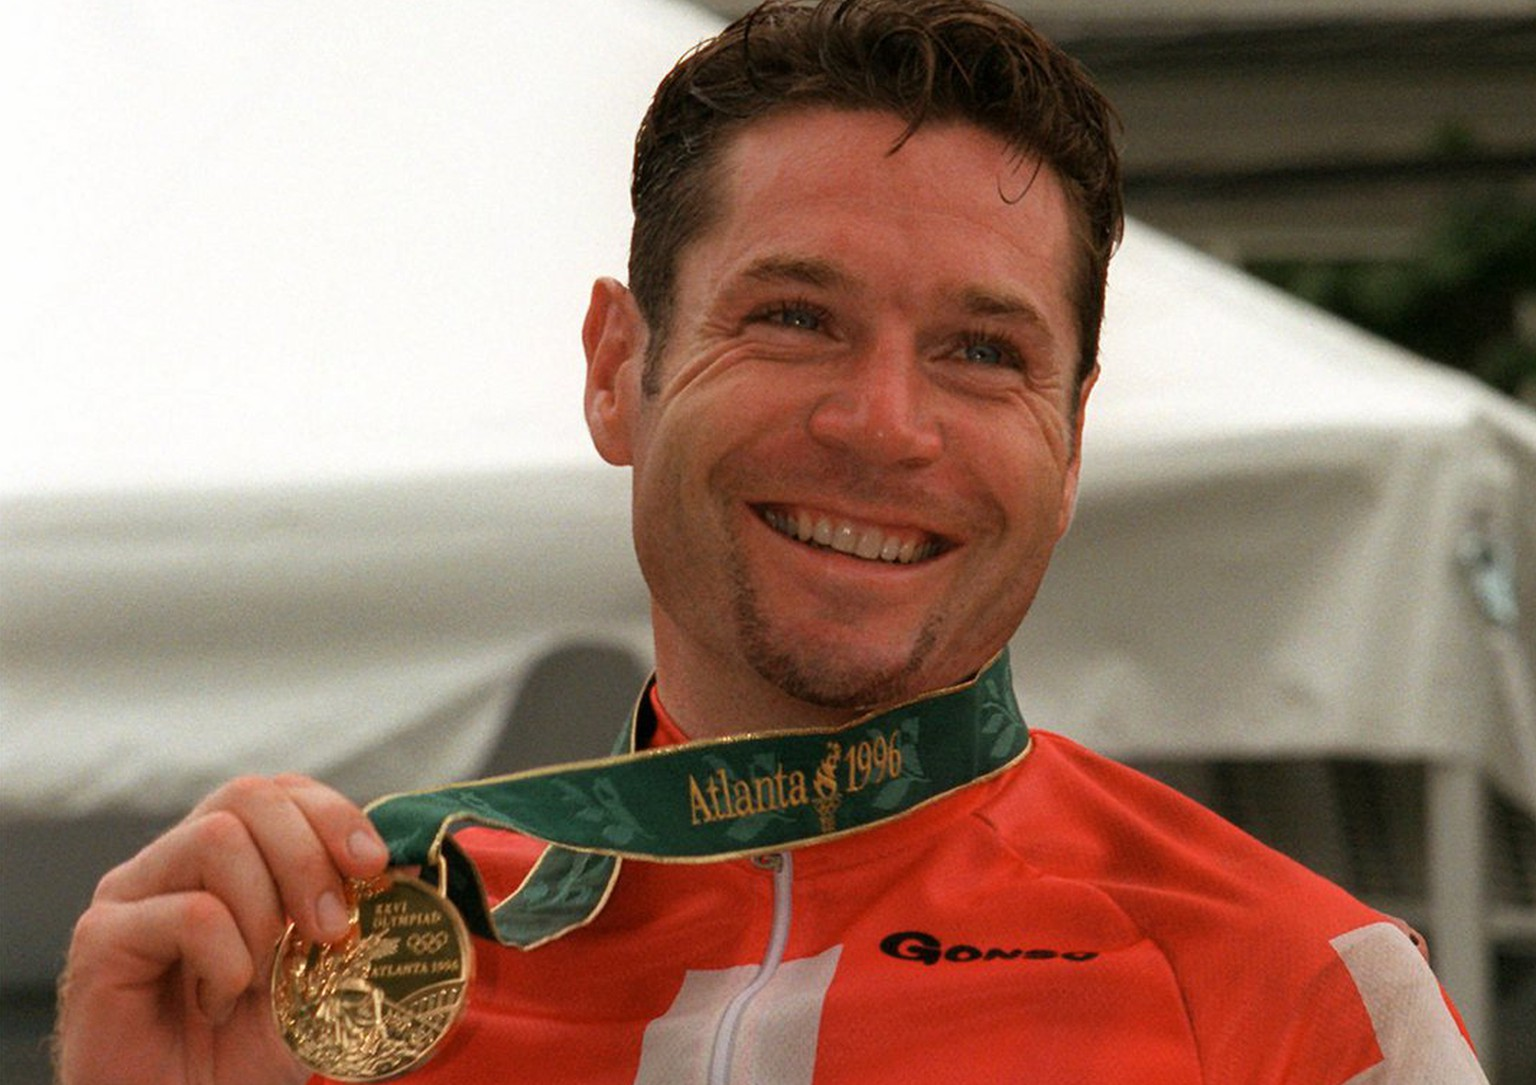 Switzerland's Pascal Richard poses with the gold medal he won in the men's Olympic cycling road race at the Centennial Summer Games in Atlanta on Wednesday, July 31, 1996.   (KEYSTONE/AP Photo/Lionel Cironneau)